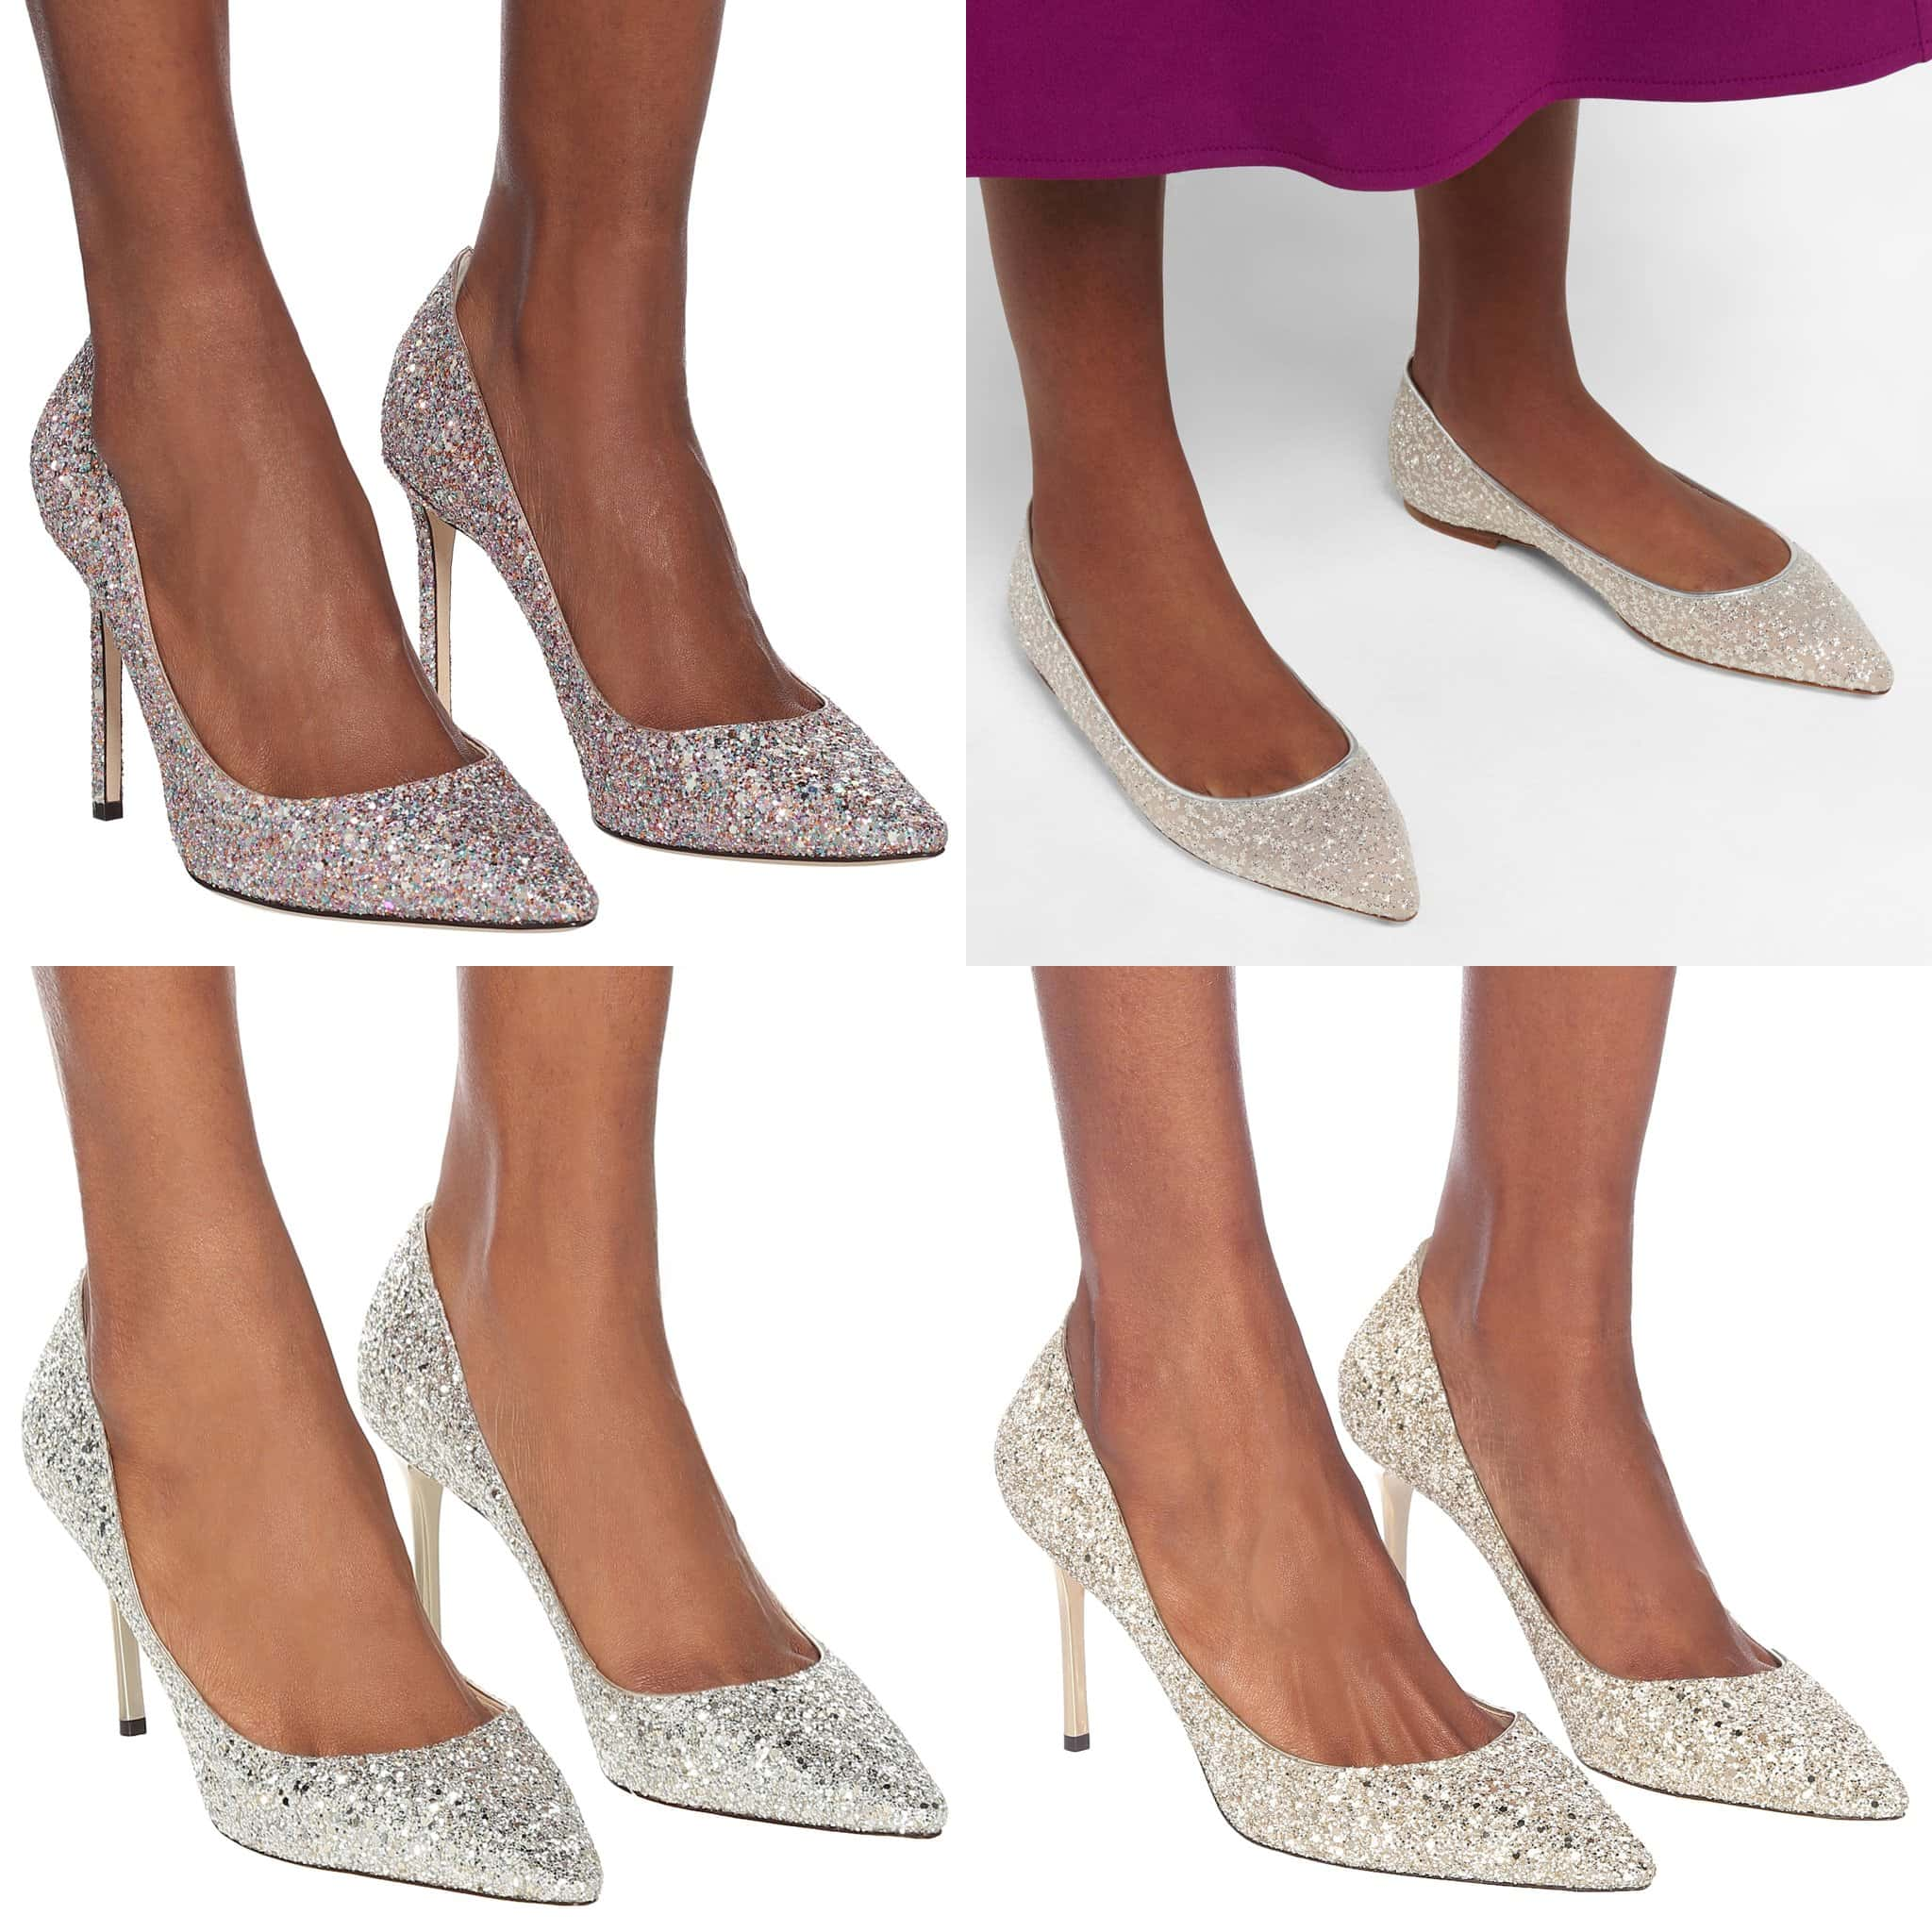 The Romy glitter shoes, available in different heel heights, will add a glamorous finish to any look